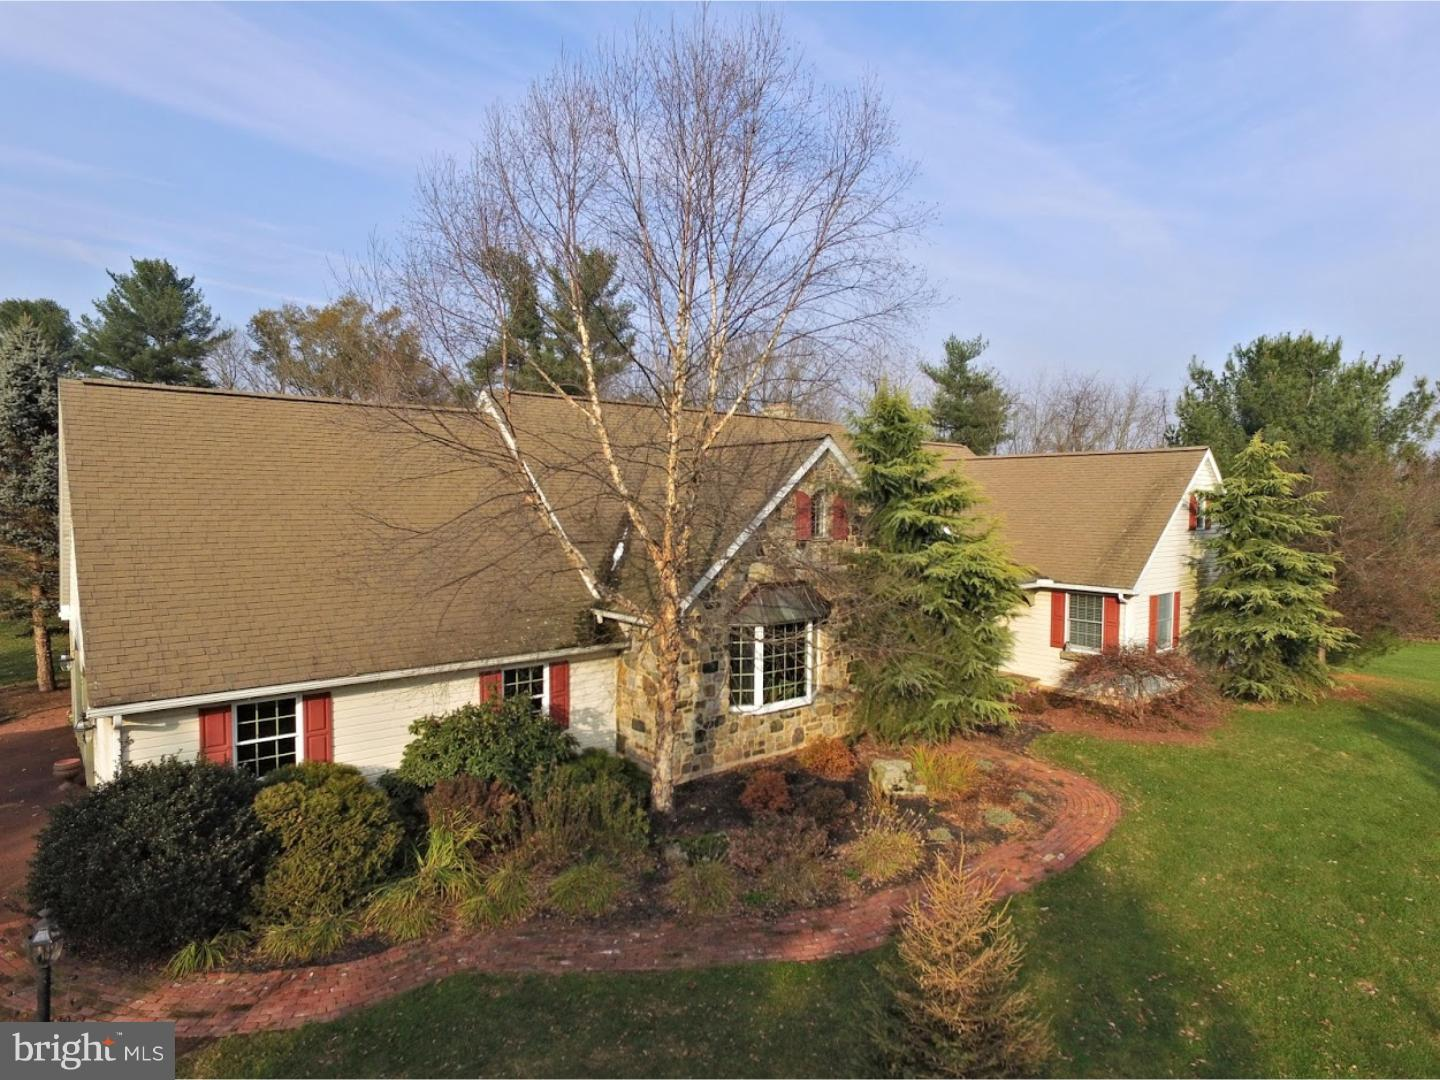 821 CLEMENS ROAD, TELFORD, PA 18969